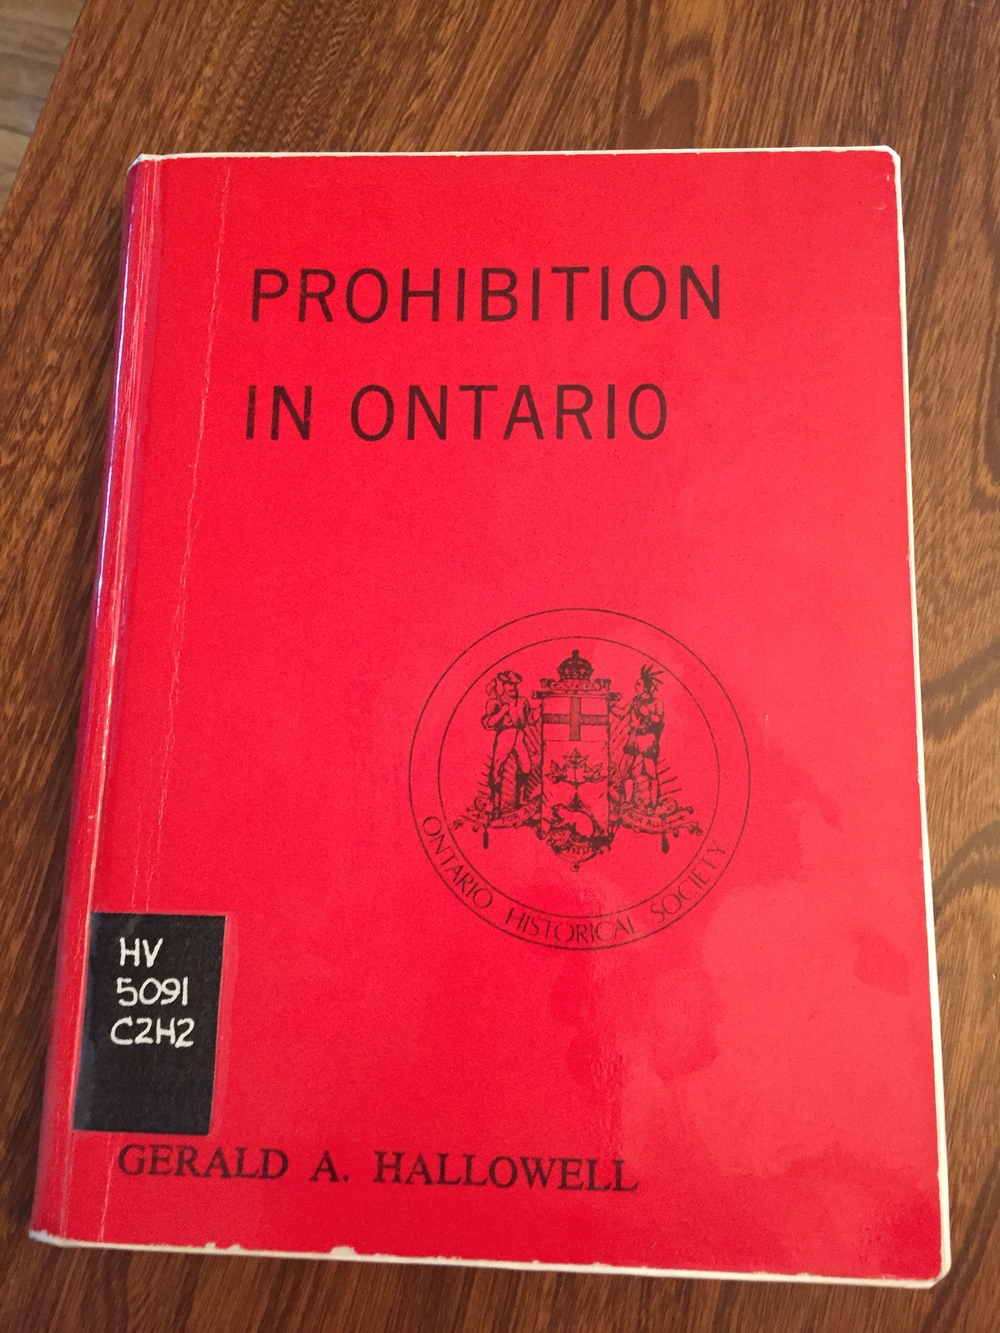 Book - Prohibition in Ontario.jpg